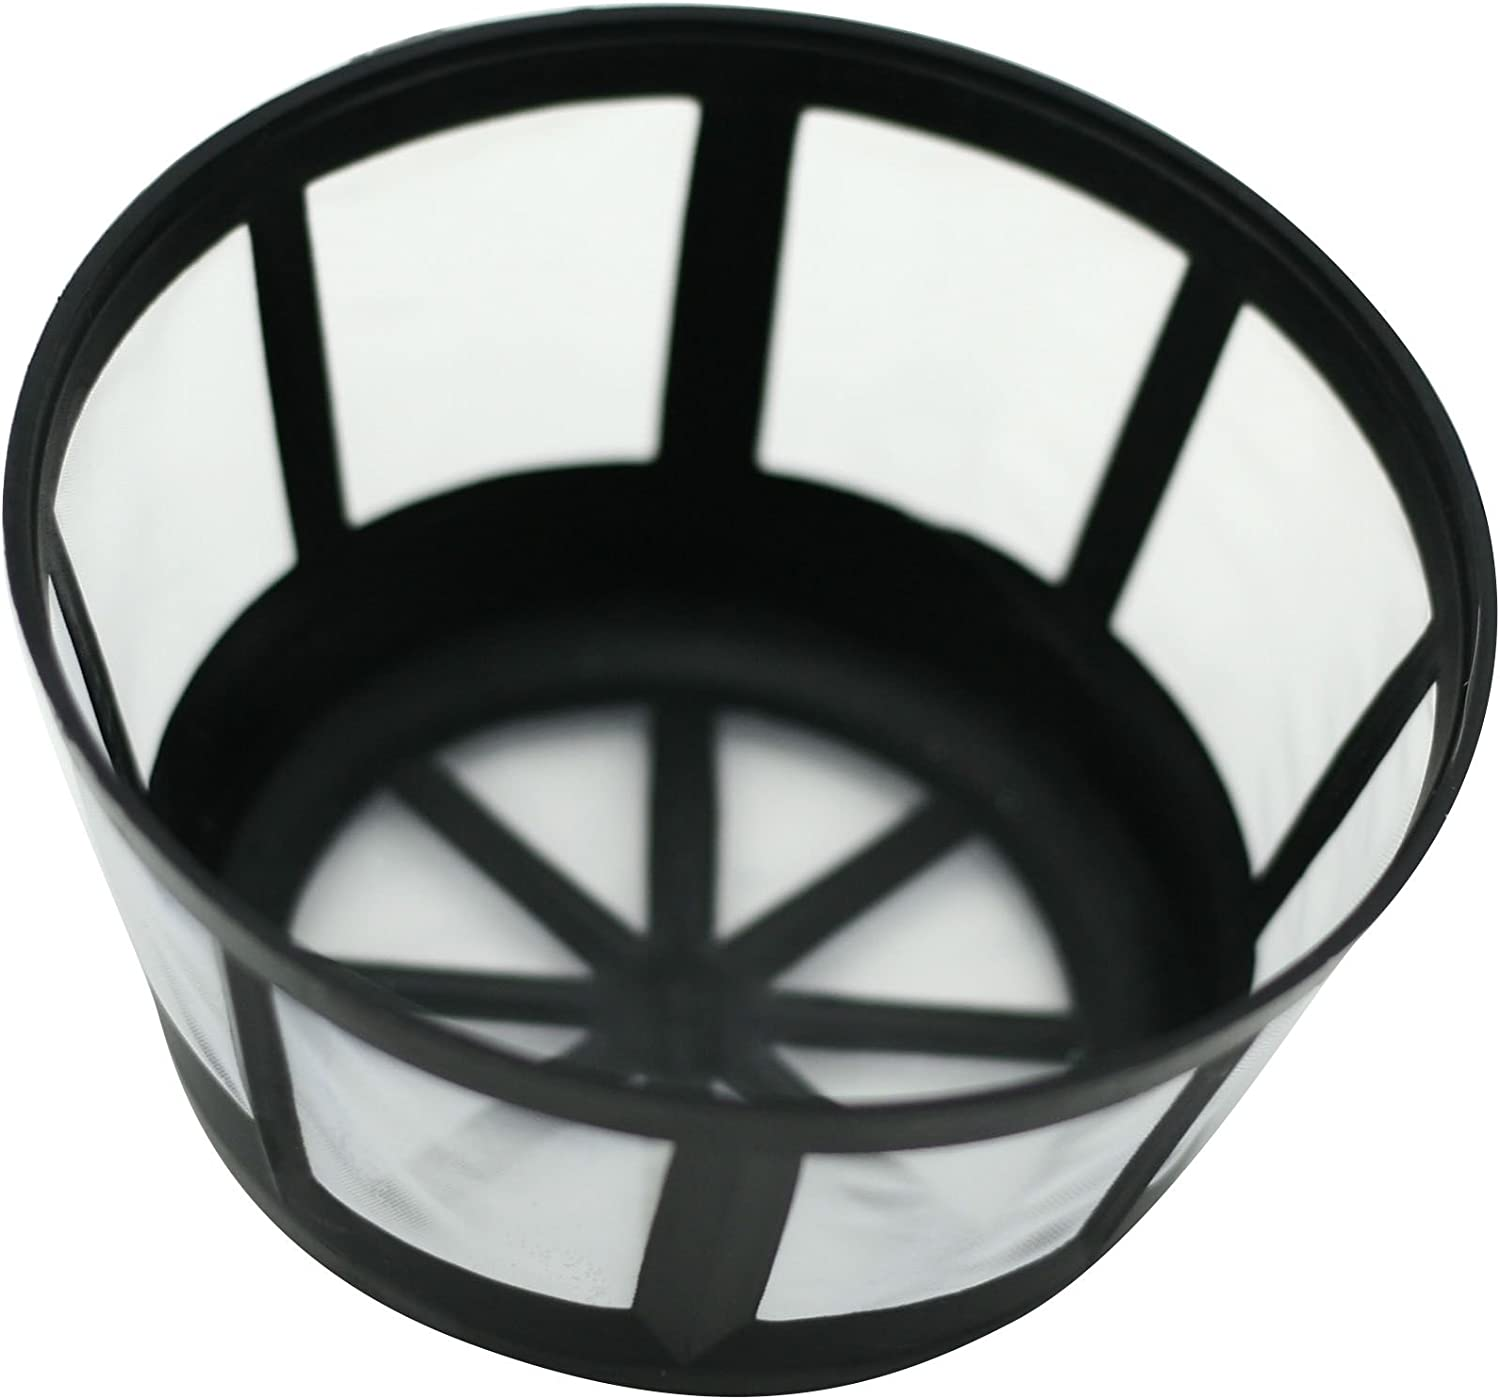 Top 10 Best Reusable Coffee Filters Reviews in 2020 1